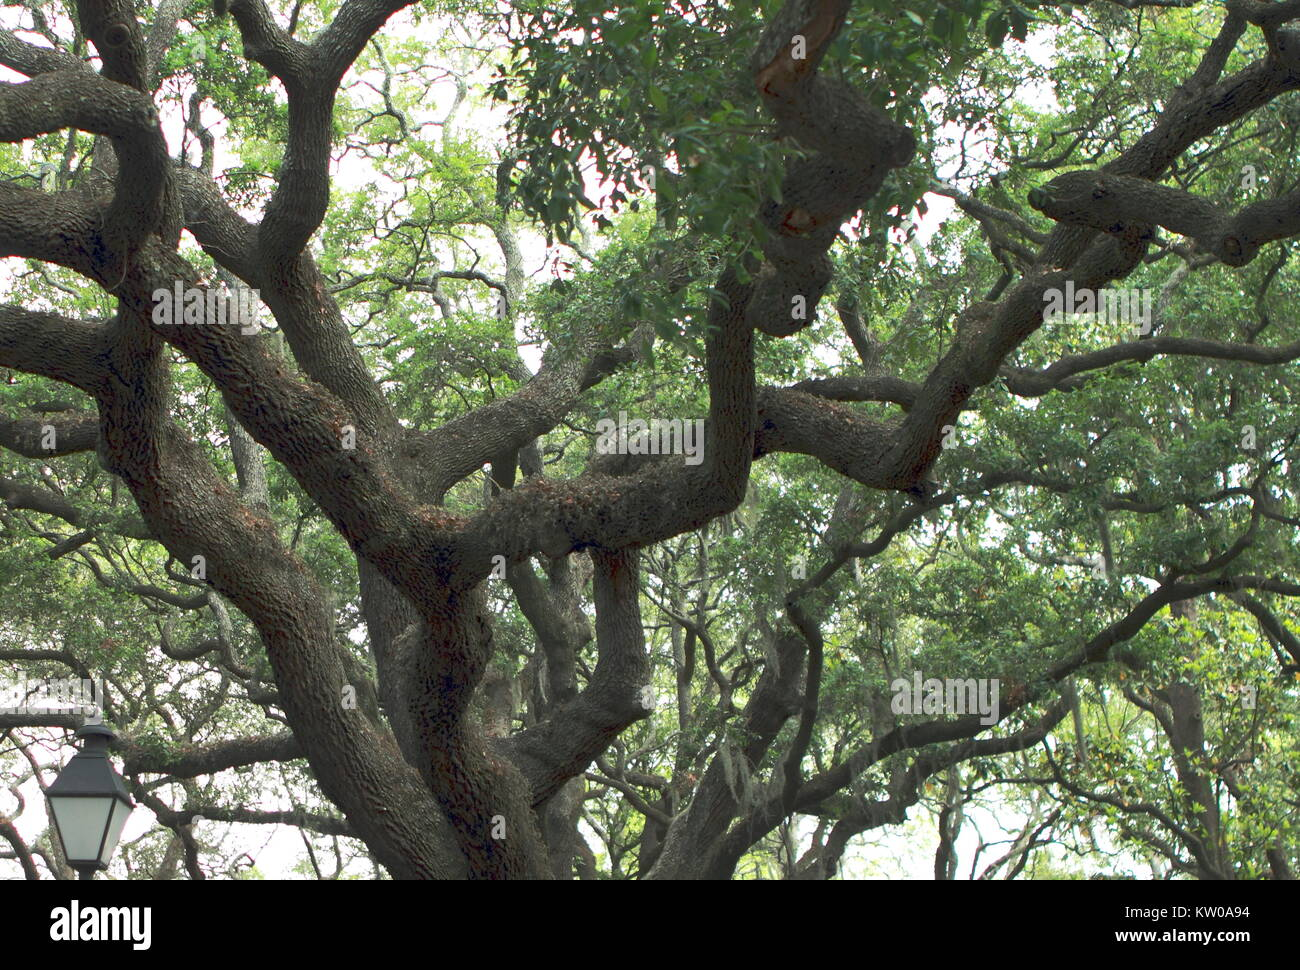 Mighty crown oak green foliage in Jacksonville, Florida - Stock Image